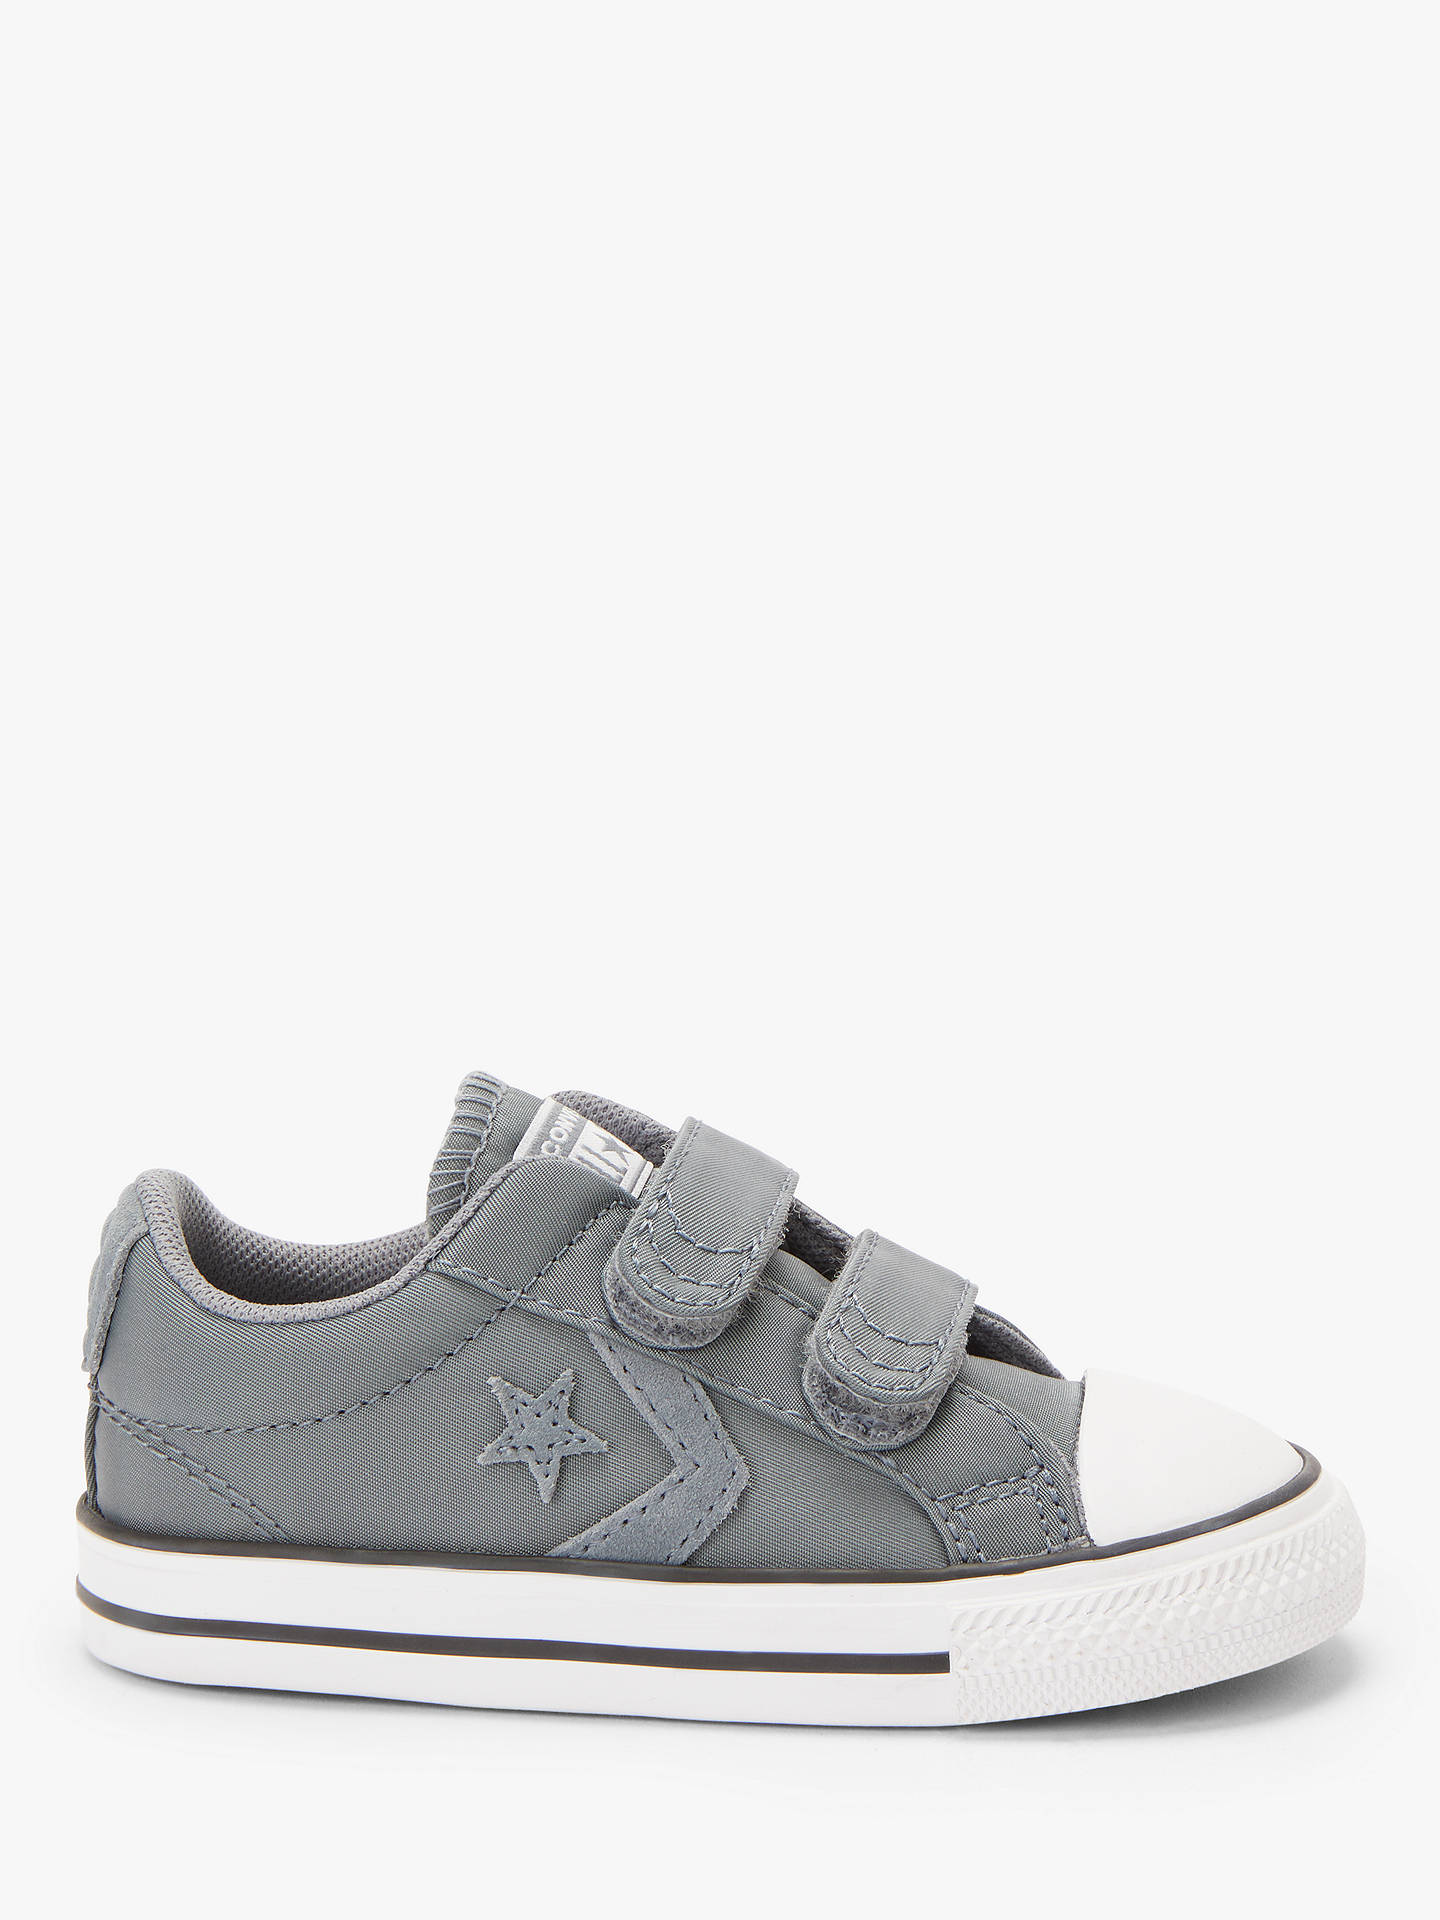 c3b4d9e1c99f Buy Converse Children s Star Player 2V Riptape Trainers